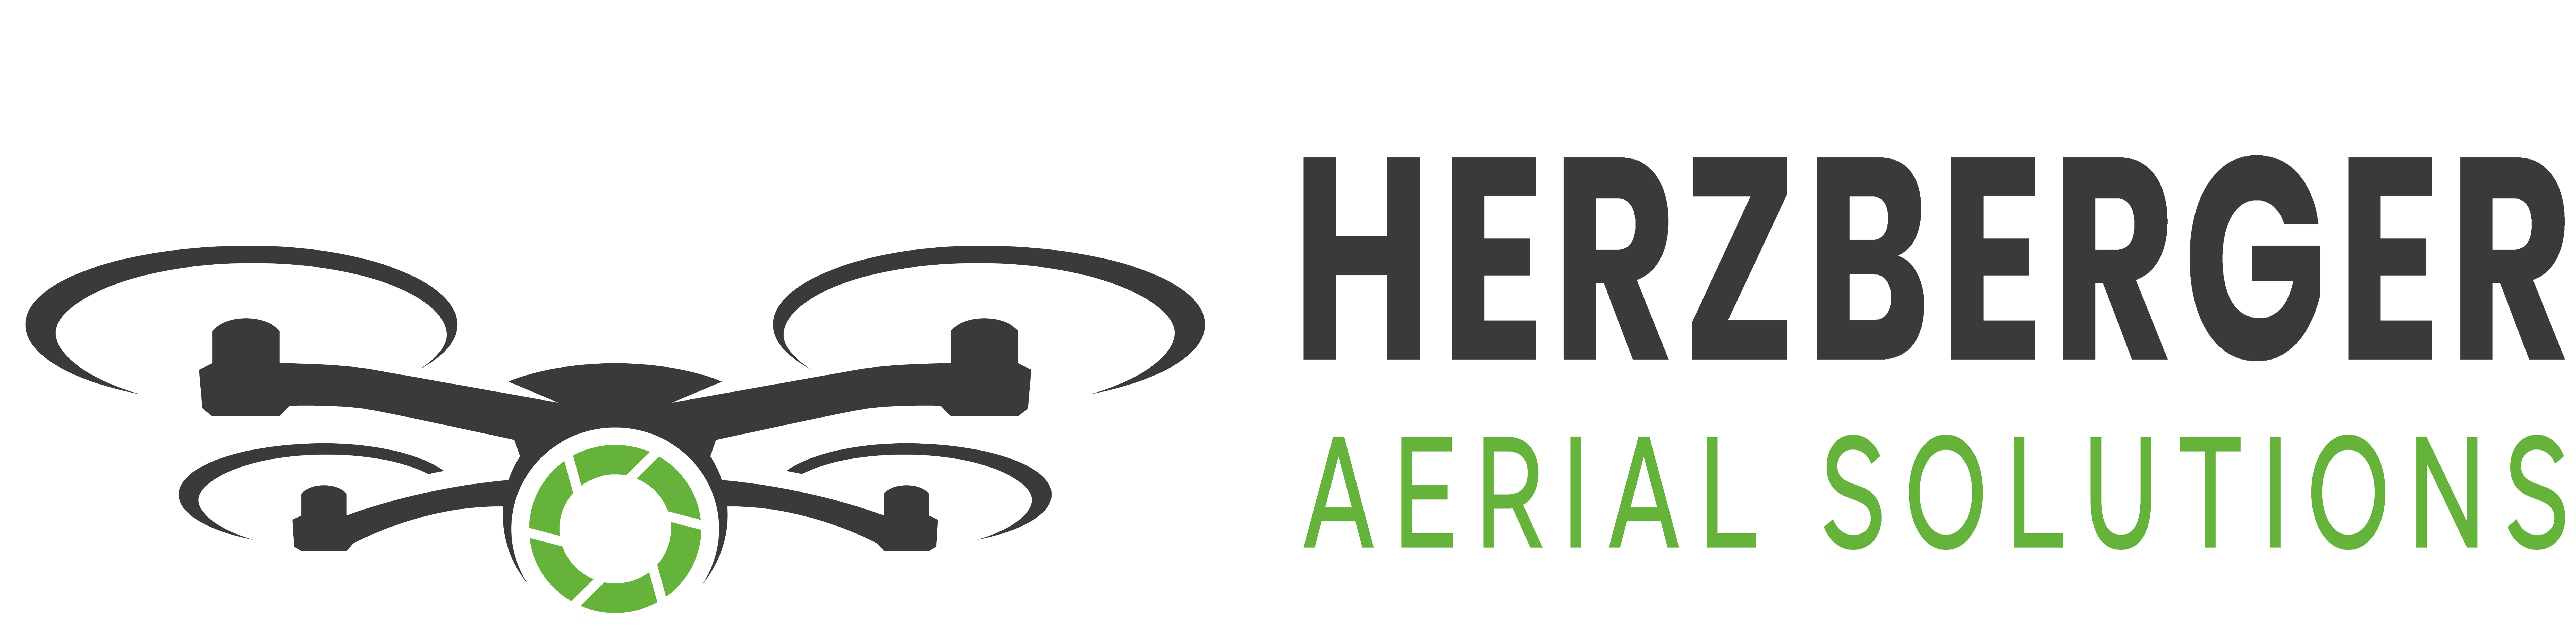 Herzberger Aerial Solutions